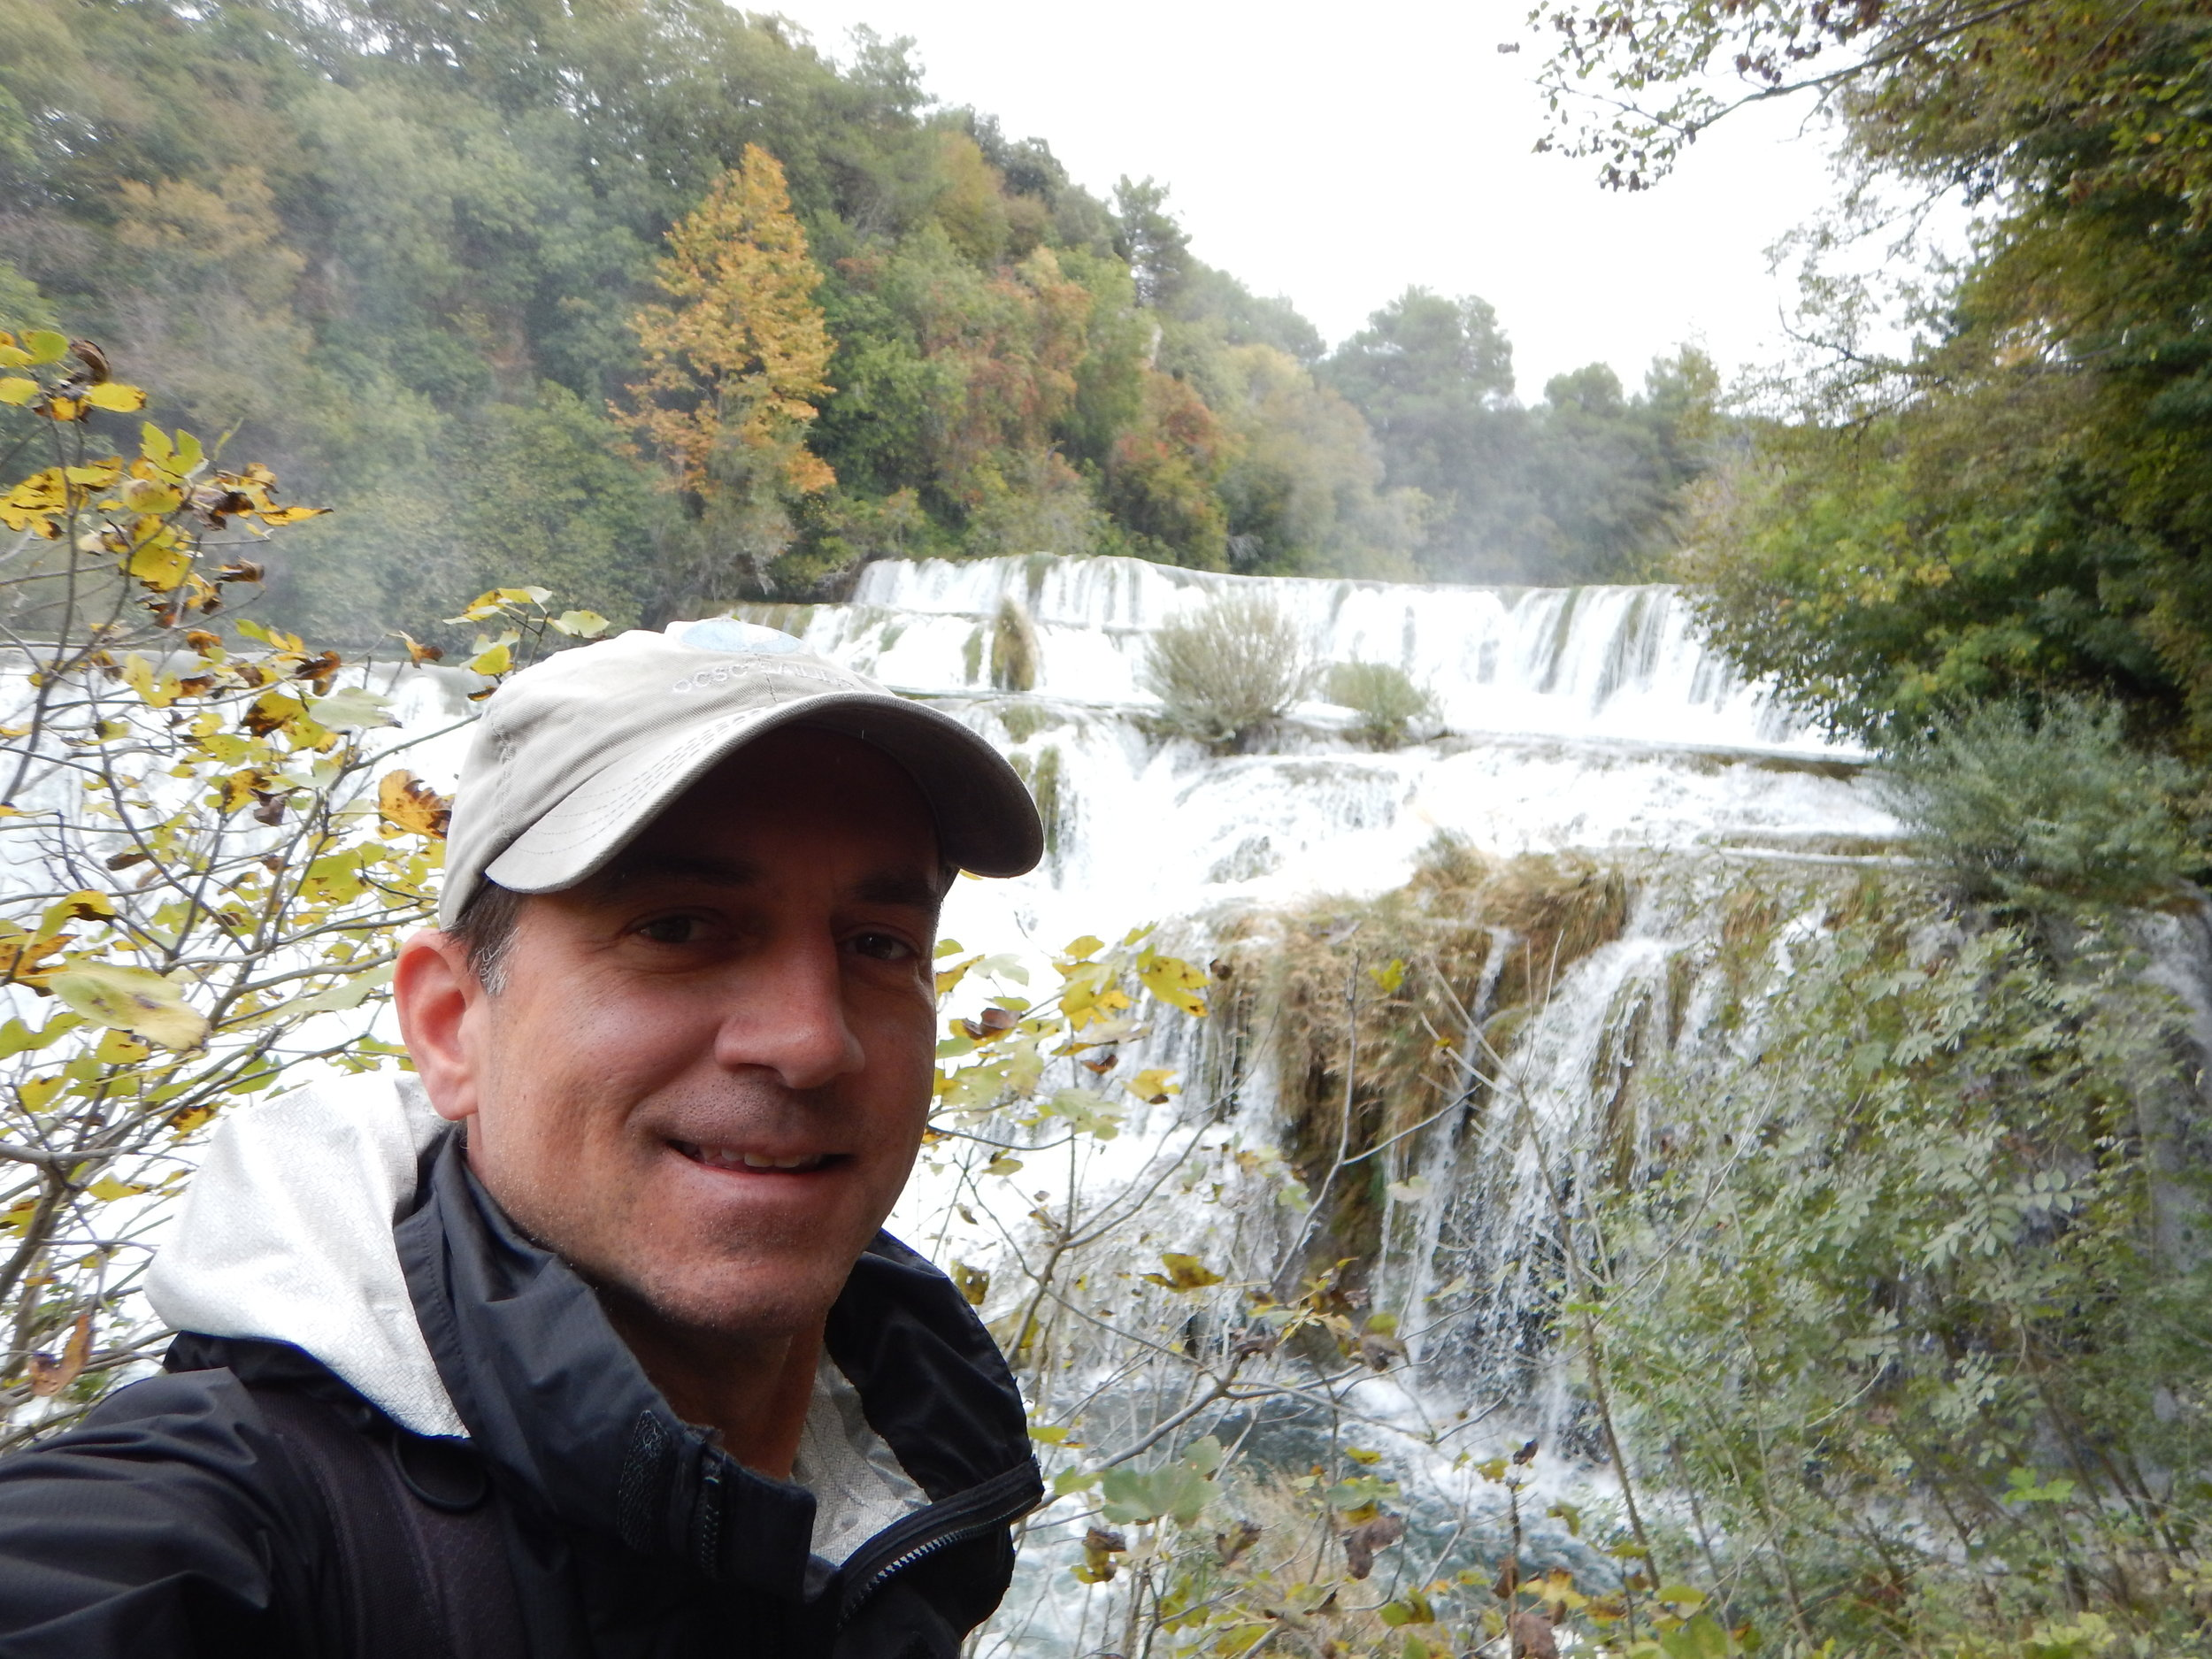 Hiking along the waterfalls in Krka National Park, about 30 minutes outside of Sibenik.